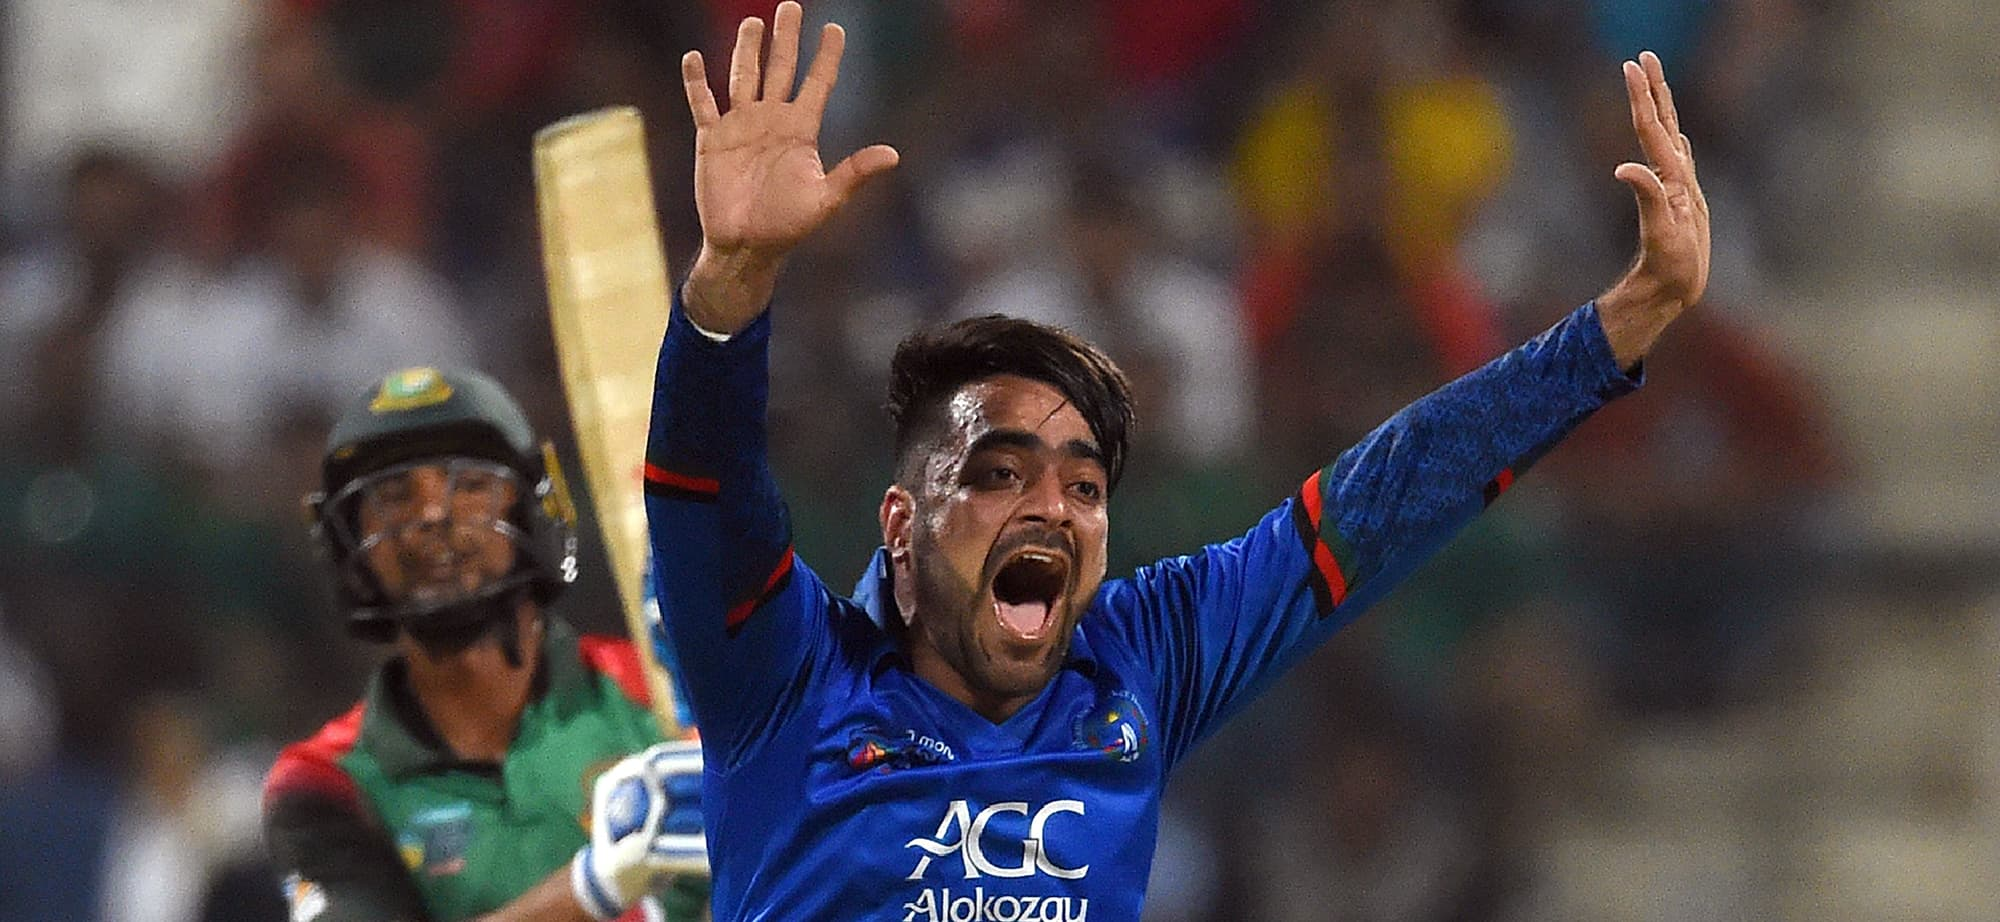 "(FILES) In this file photo taken on September 20, 2018 Afghan cricketer Rashid Khan appeals for an unsuccessful leg before wicket (LBW) decision against Bangladesh batsman Mohammad Mahmudullah during the one day international (ODI) Asia Cup cricket match between Bangladesh and Afghanistan at The Sheikh Zayed Stadium in Abu Dhabi. - Groomed on dusty pitches as a refugee, record-breaking Rashid Khan will face his toughest examination yet at the World Cup with former coaches confident the Afghan can ""dismantle"" the cricket's best batsmen. (Photo by ISHARA S. KODIKARA / AFP) — AFP or licensors"